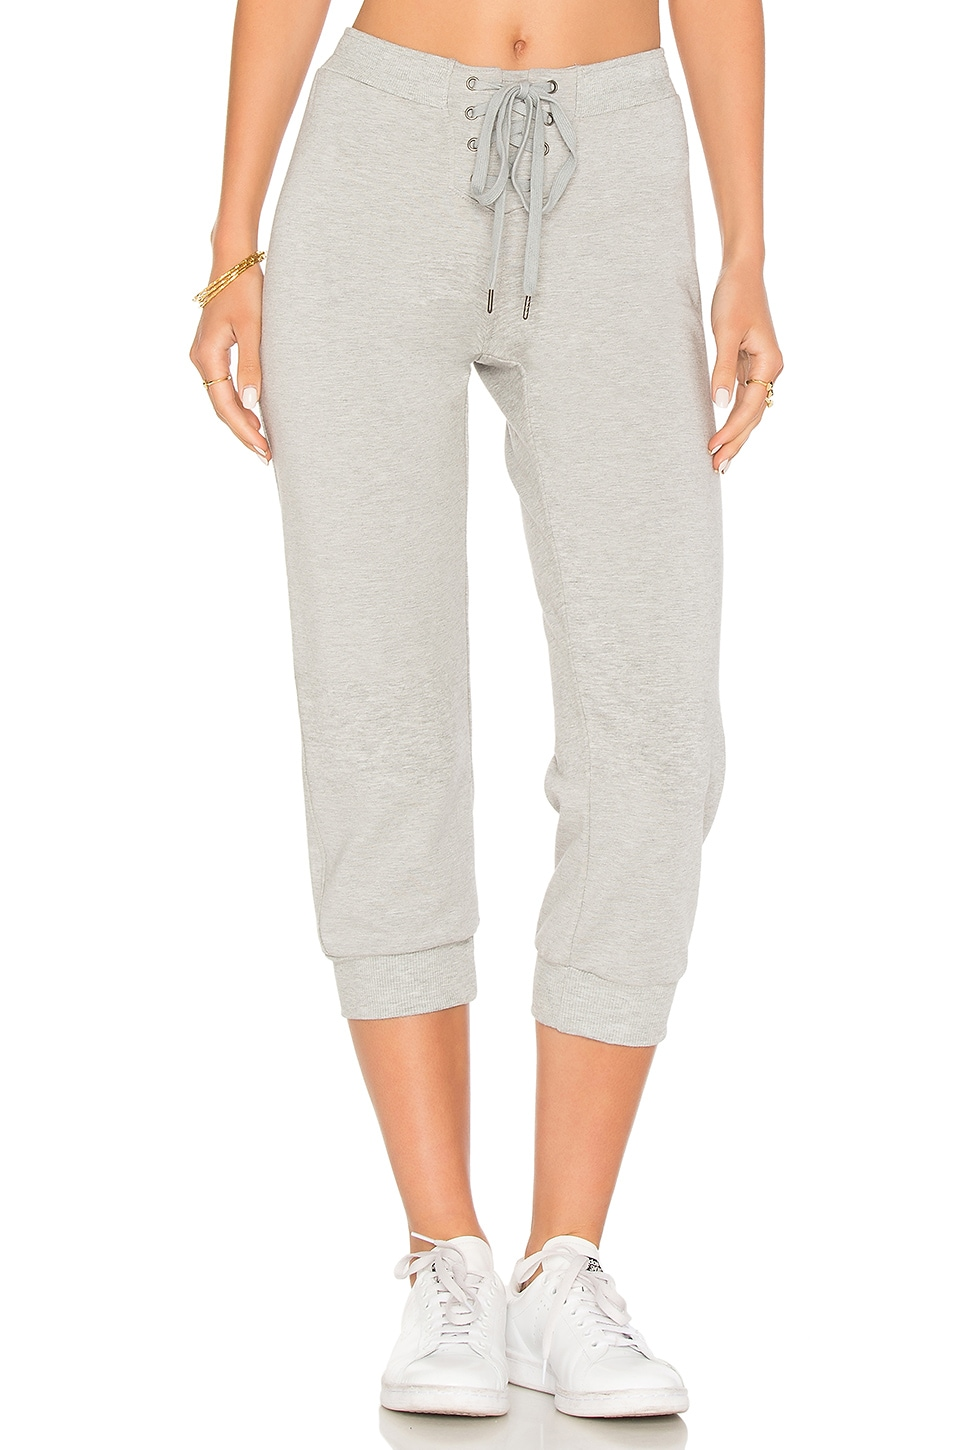 David Lerner Cropped Trackpant in Charcoal Grey